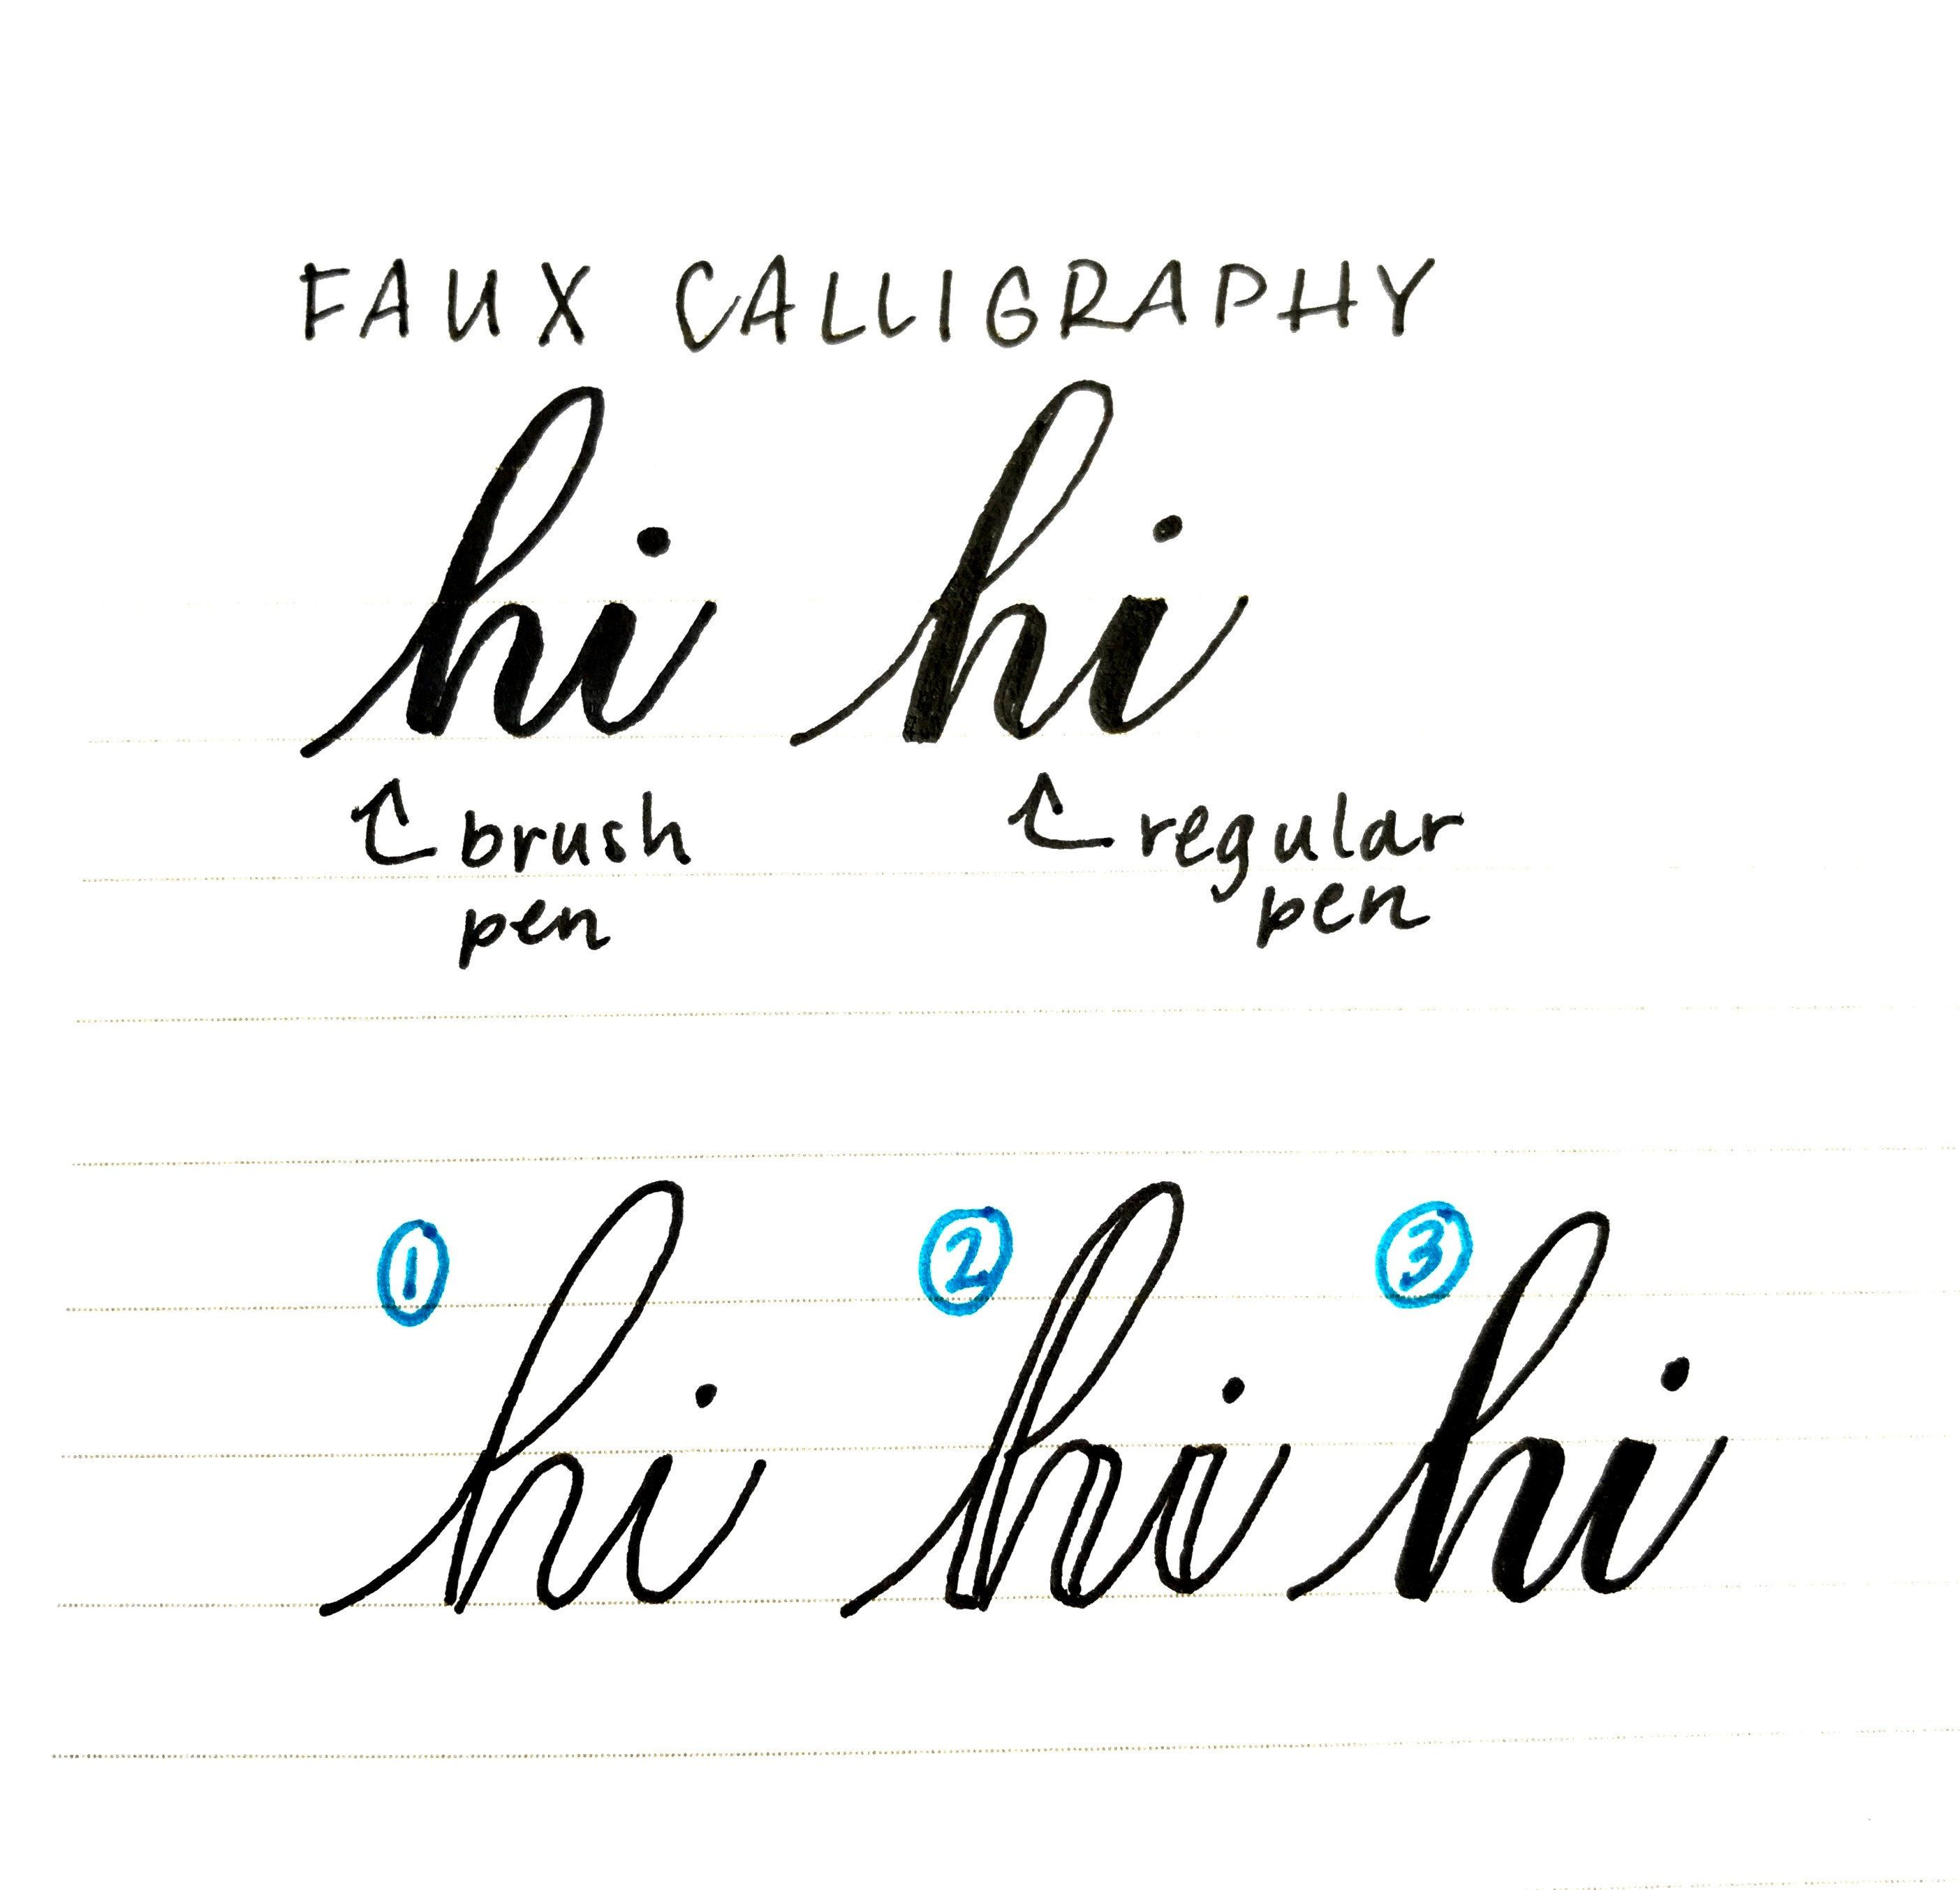 How To Do Faux Calligraphy